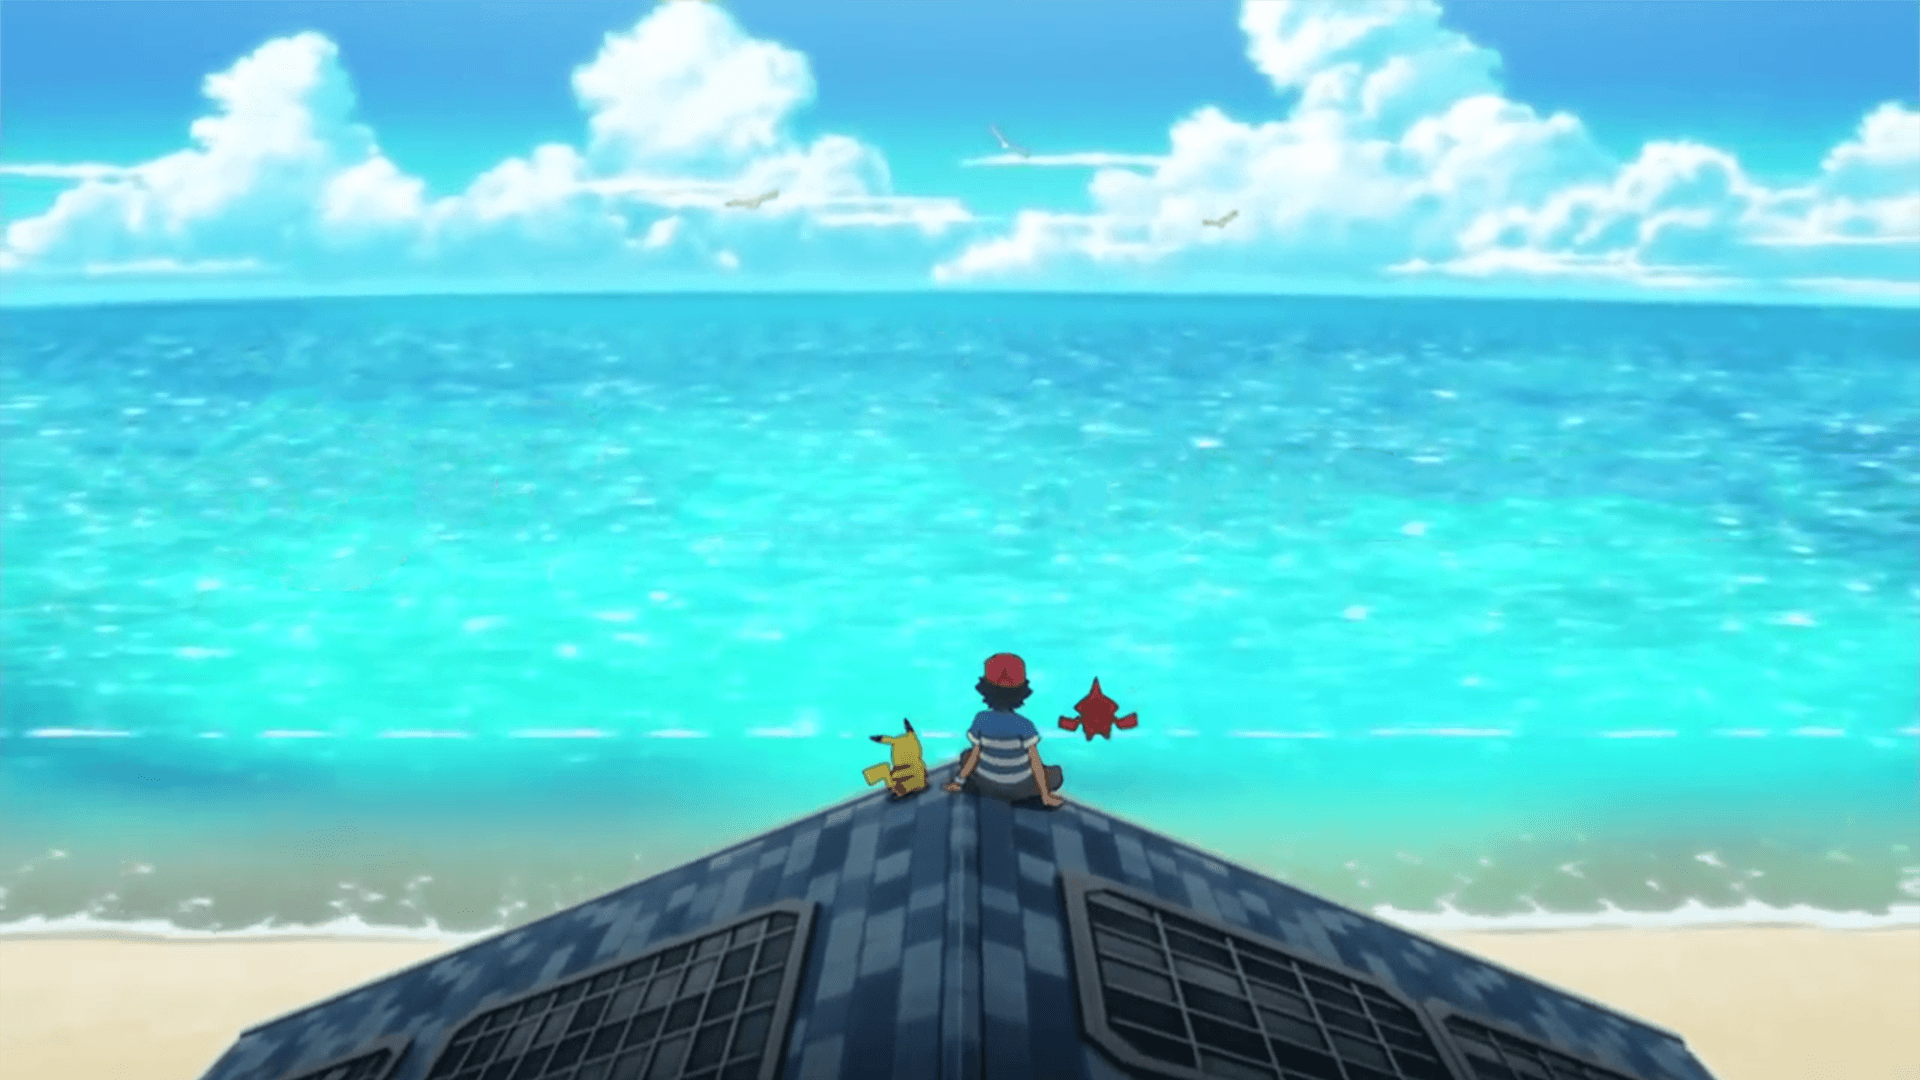 Pokemon Sun And Moon Wallpaper: Pokémon Sun And Moon HD Wallpapers